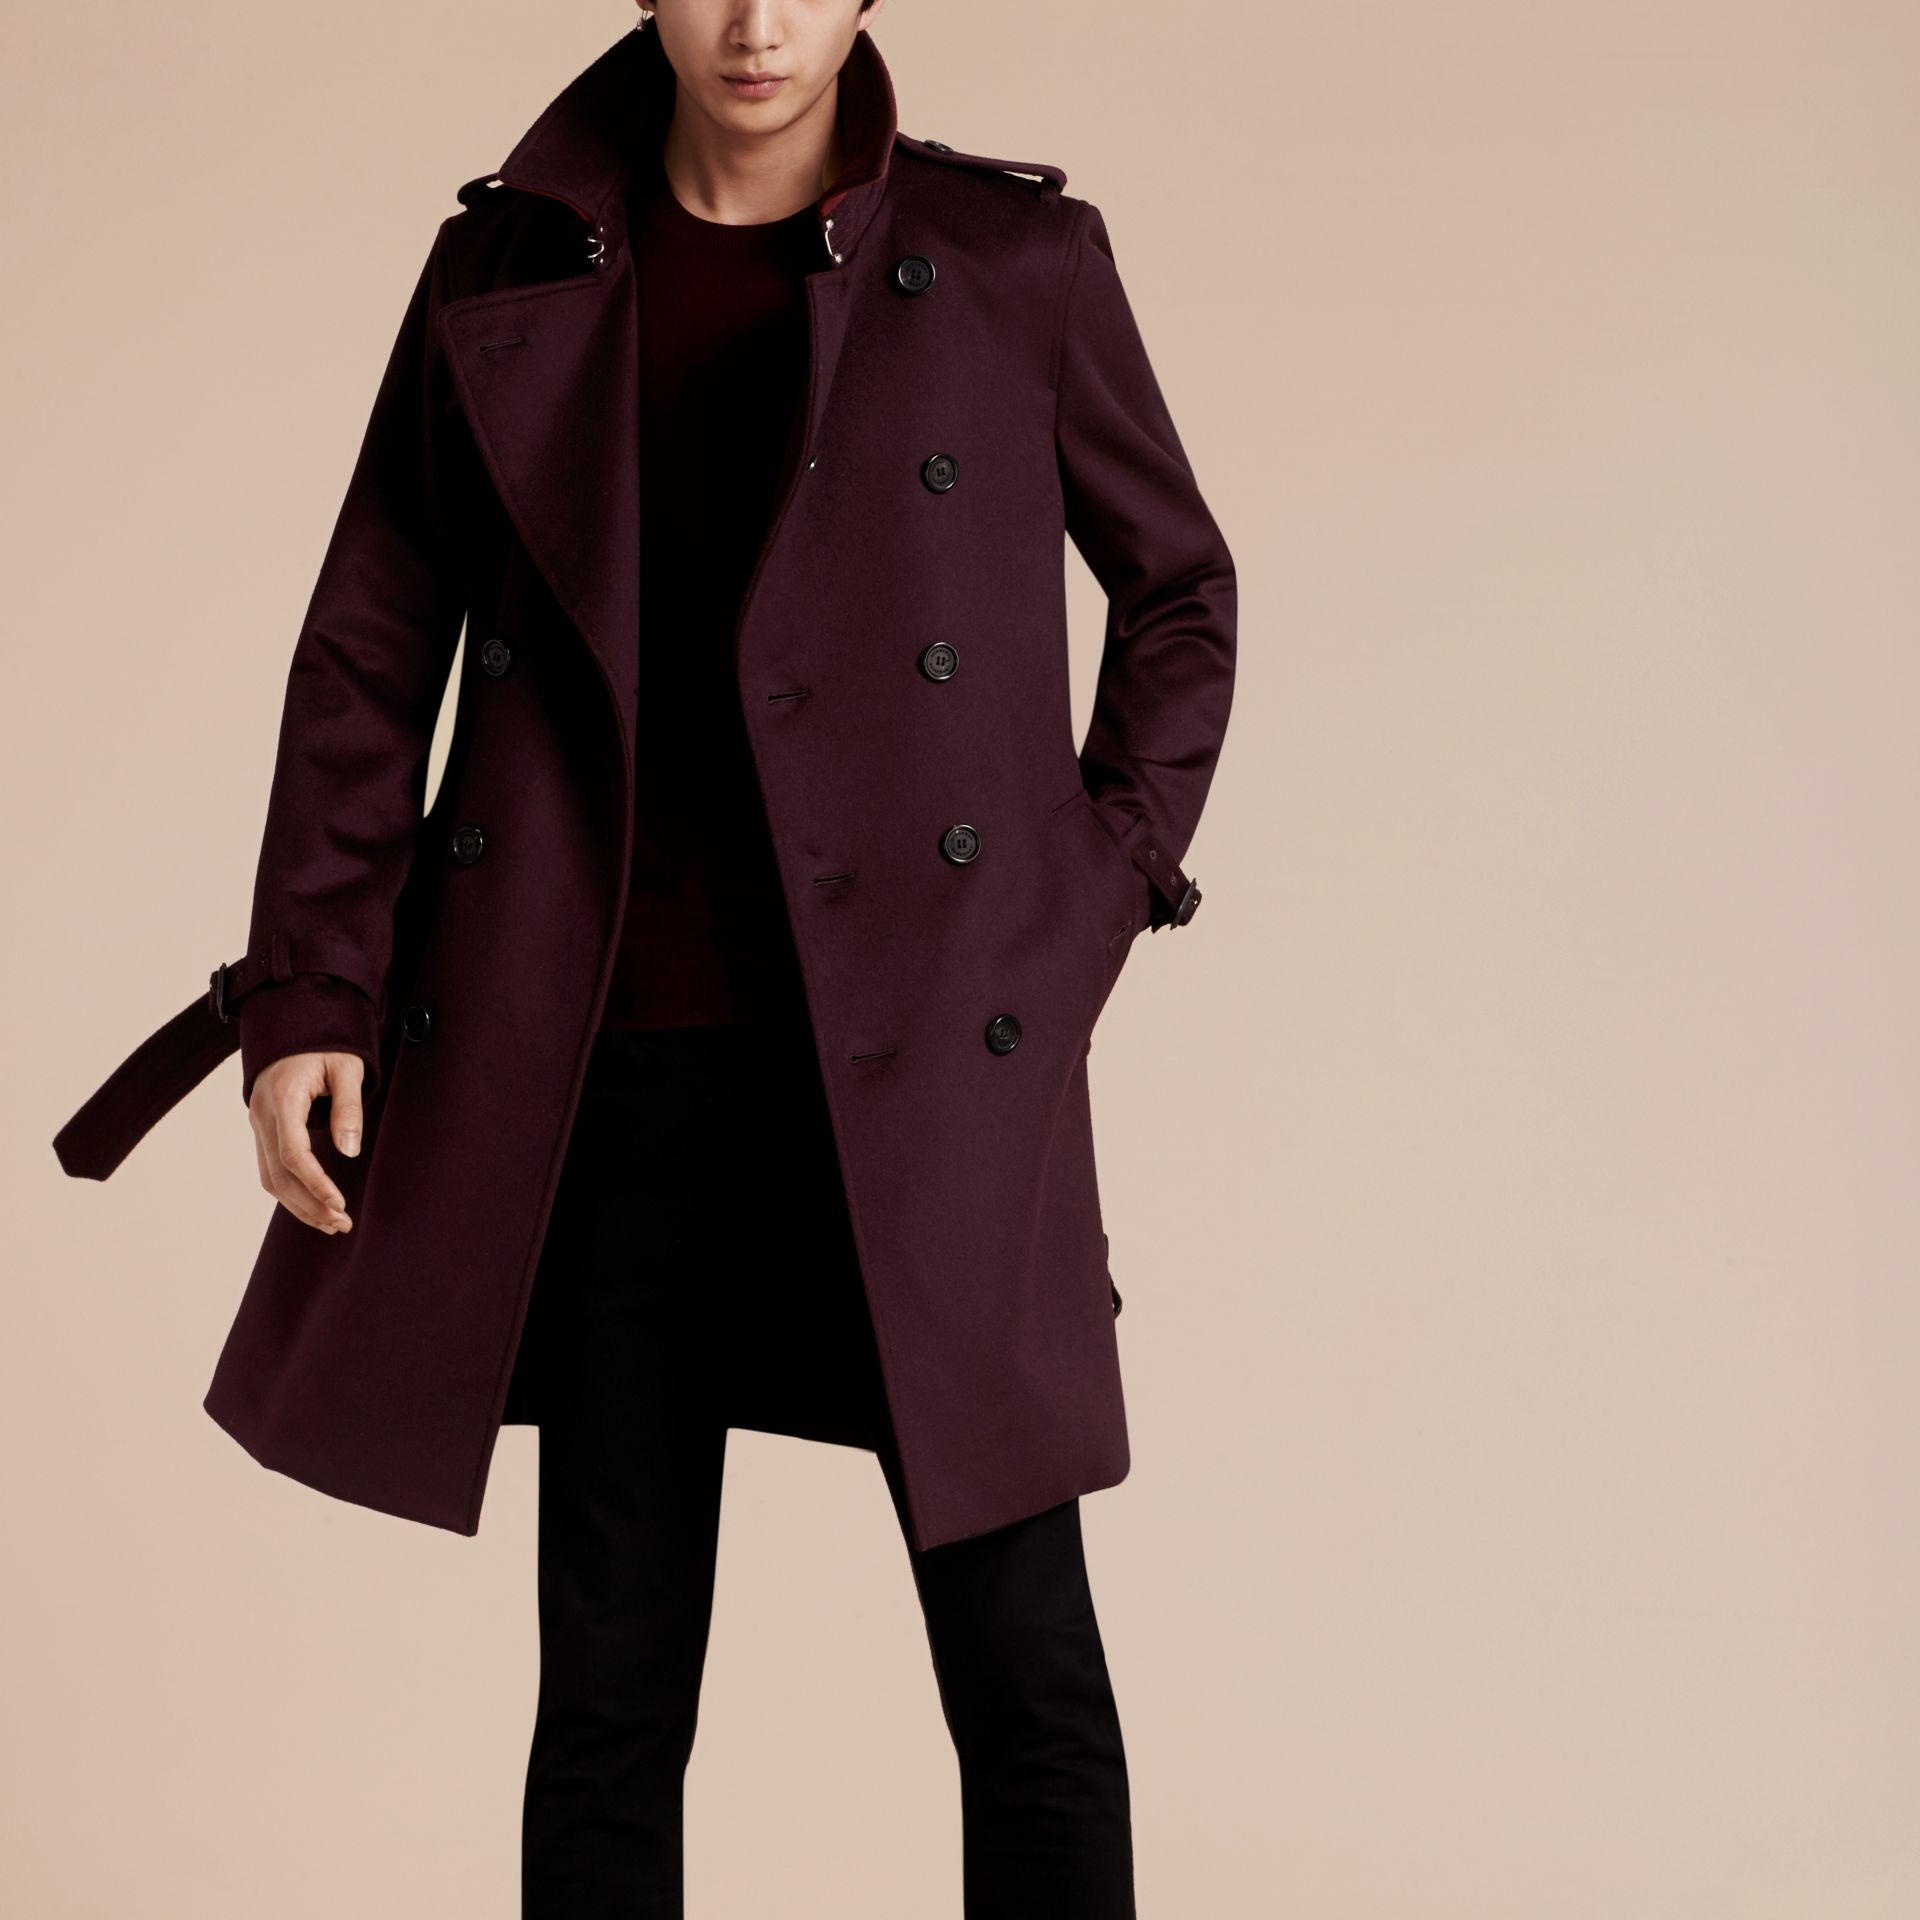 Prune Trench-coat en cachemire Prune - photo de la galerie 7